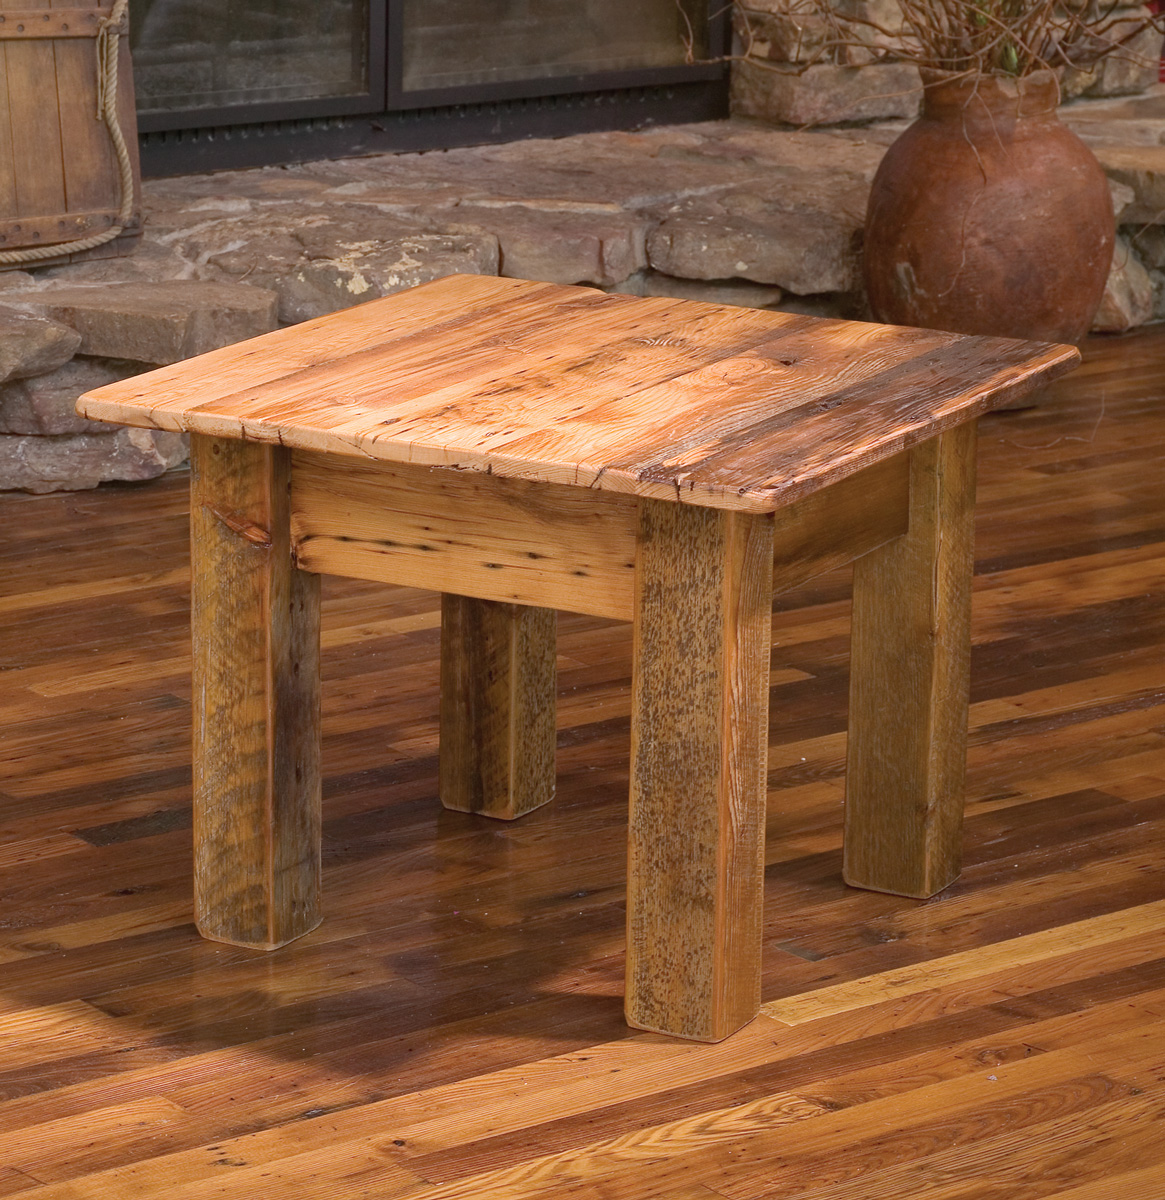 Teton End Table Rustic Furniture Mall by Timber Creek : LRTR18 TetonEndtable from www.rusticfurnituremall.com size 1165 x 1200 jpeg 566kB